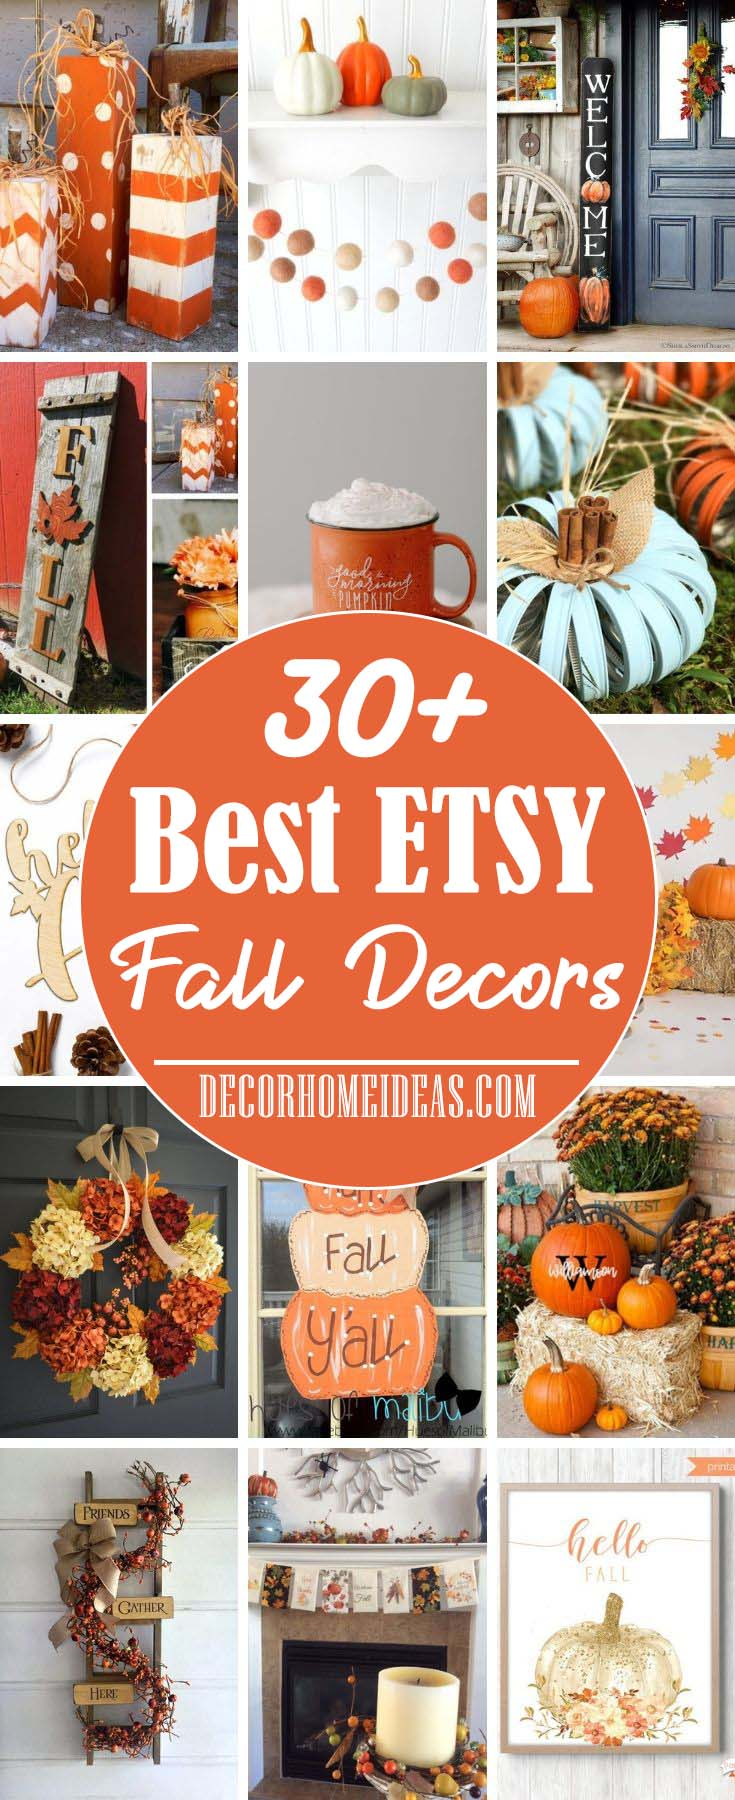 Best Etsy Fall Decorations